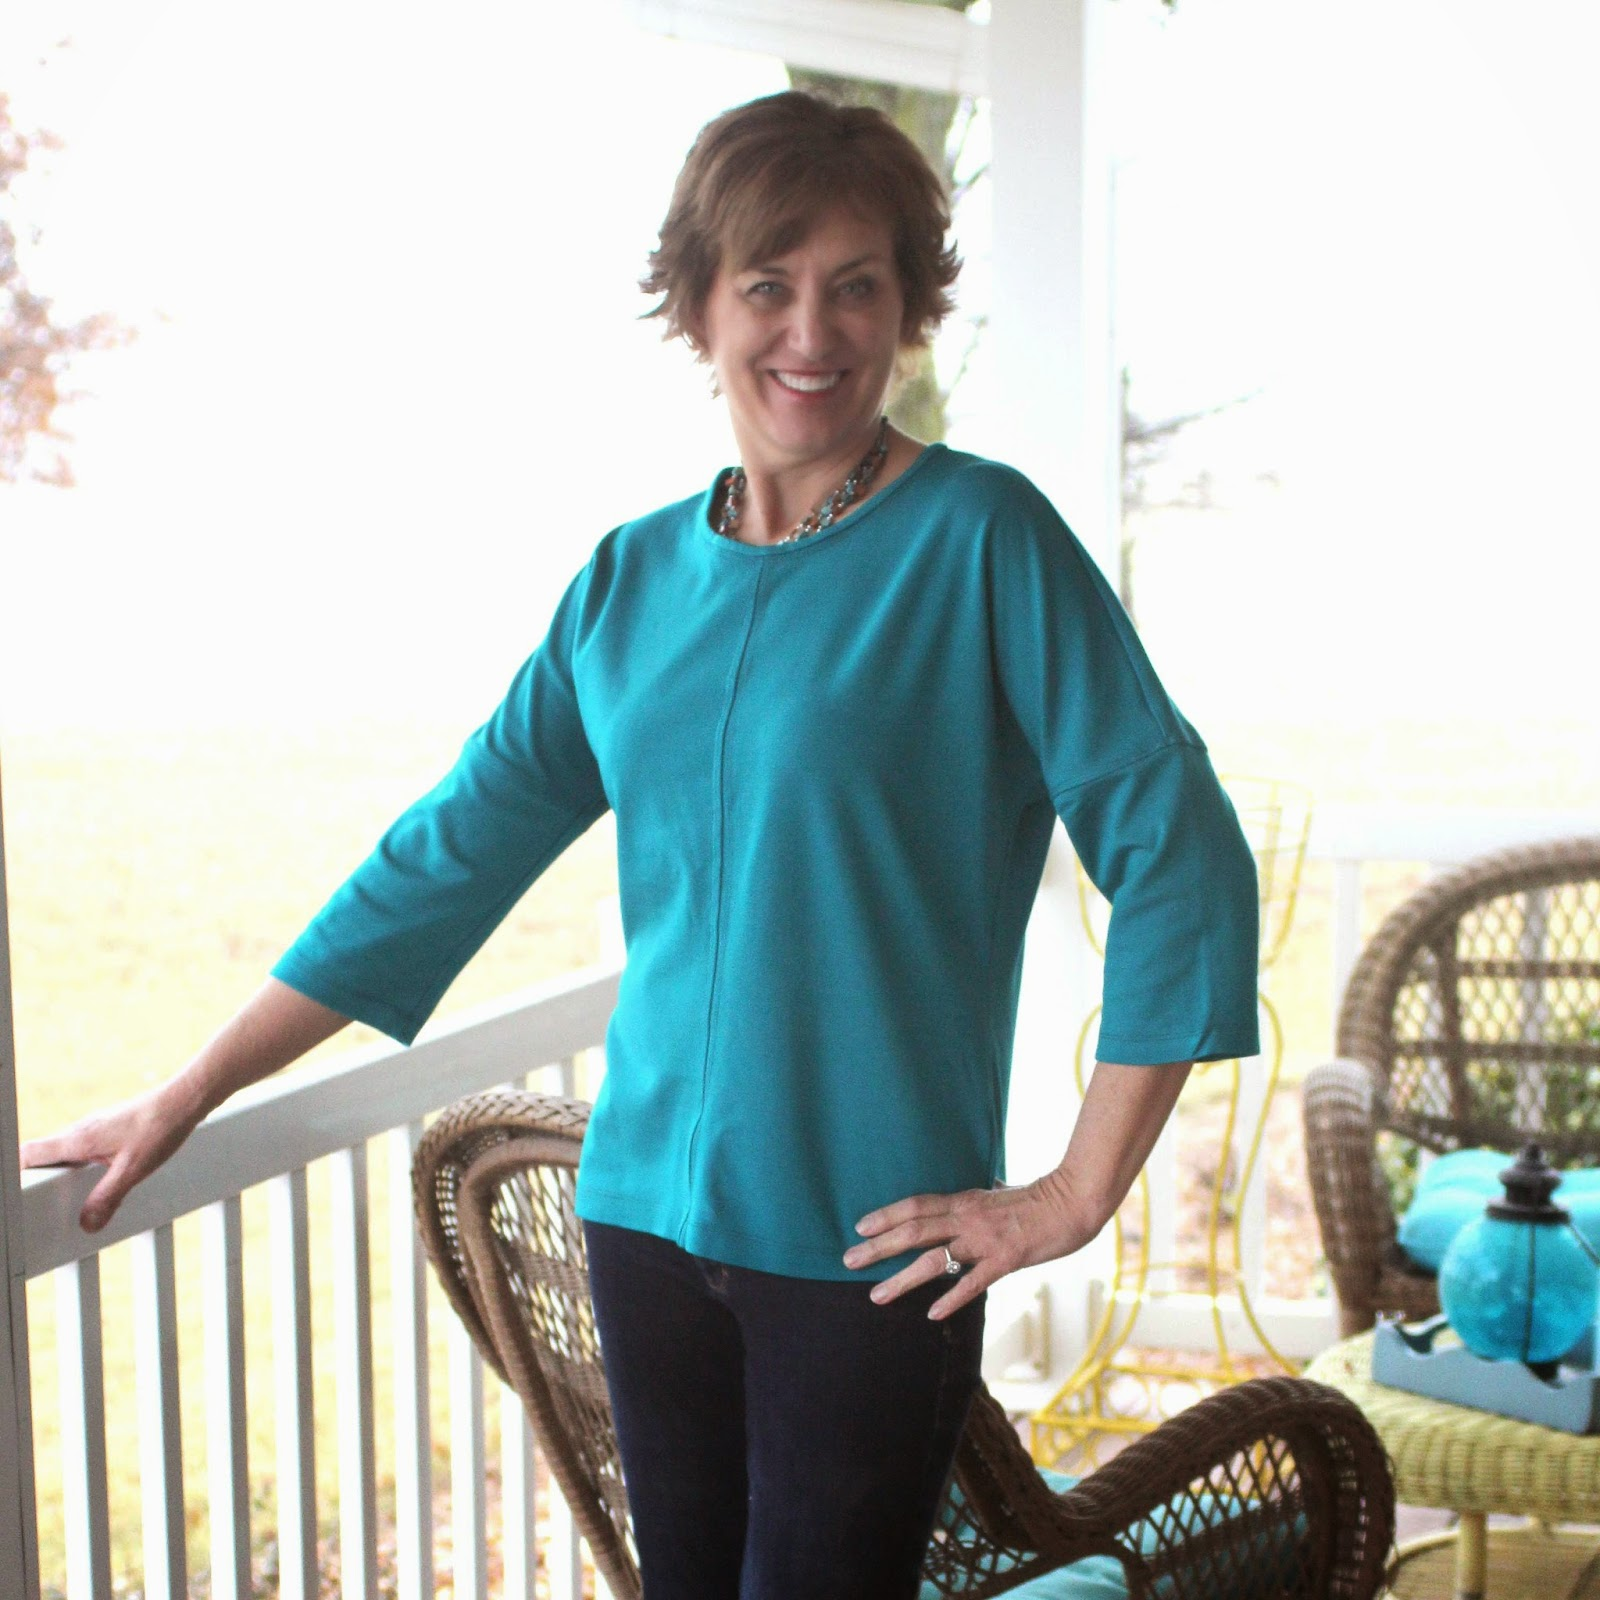 Vogue 8840 top using Ponte knit and topstitching